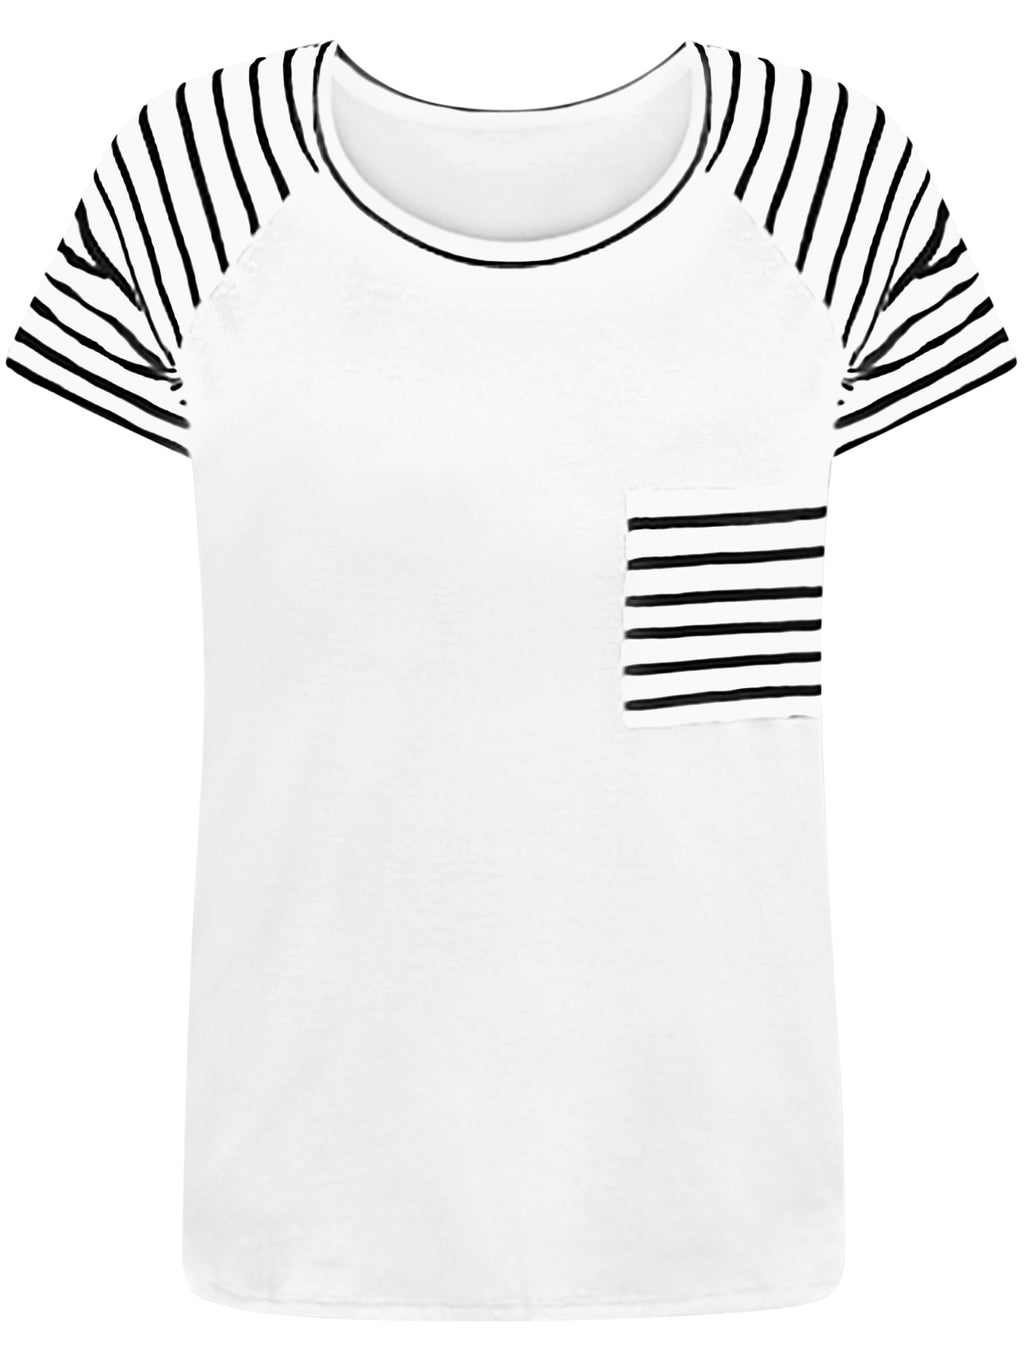 Black & White Striped Plus Size T-Shirt